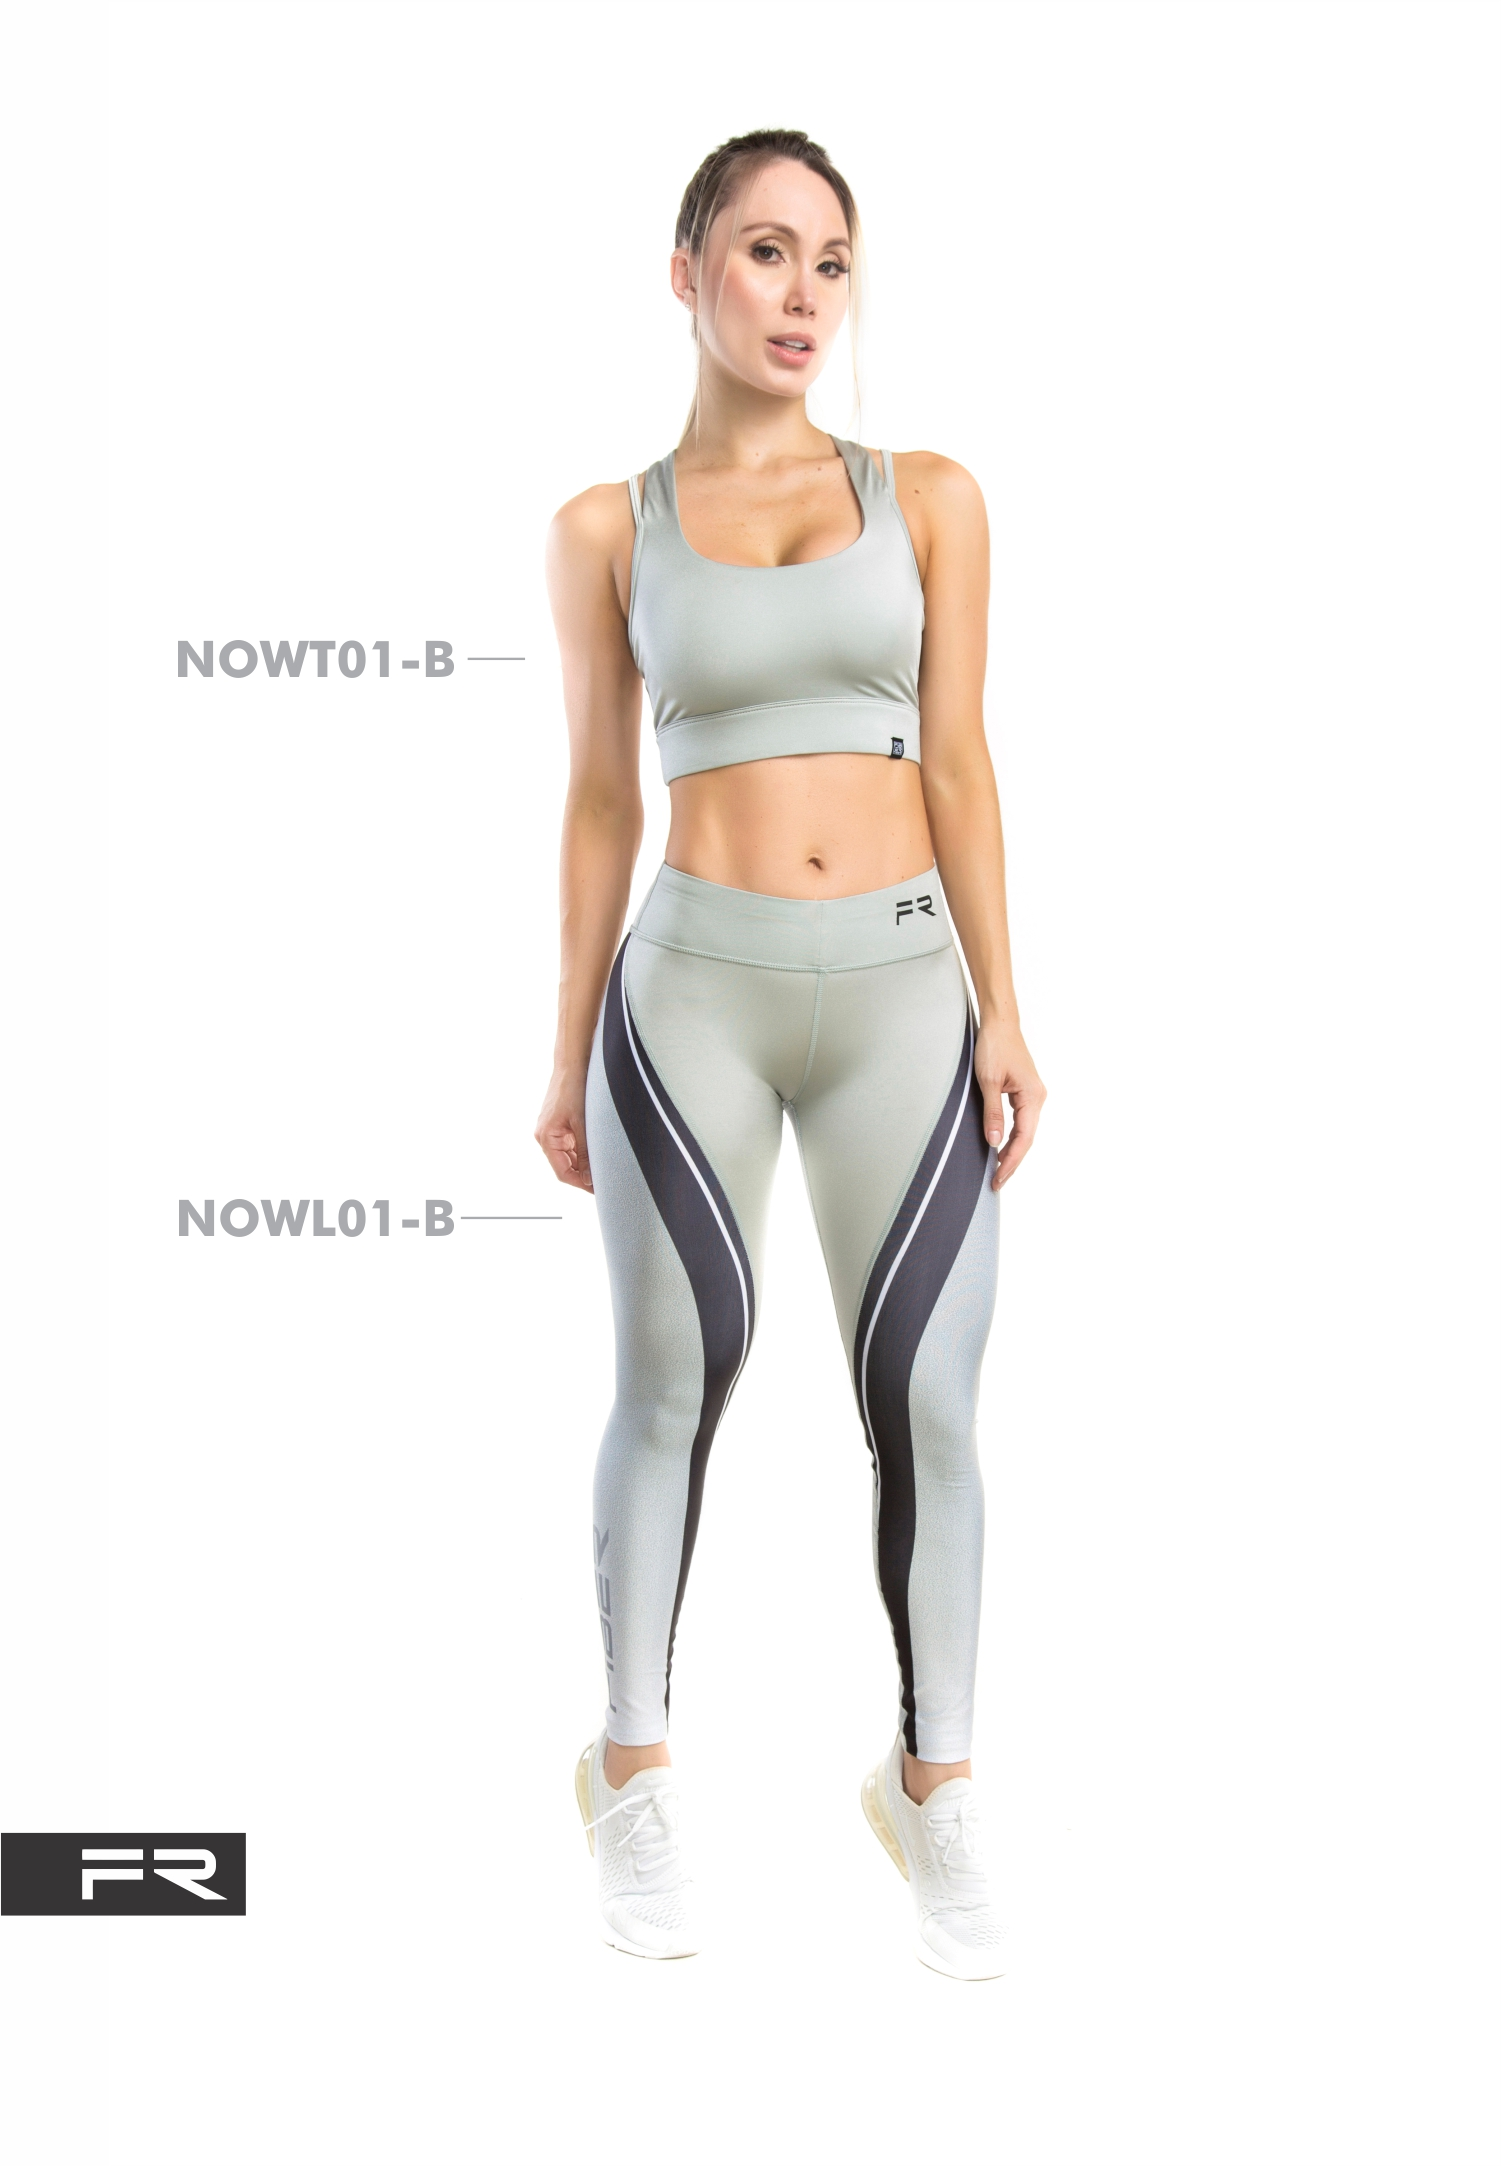 LEGGINS - NOW 09